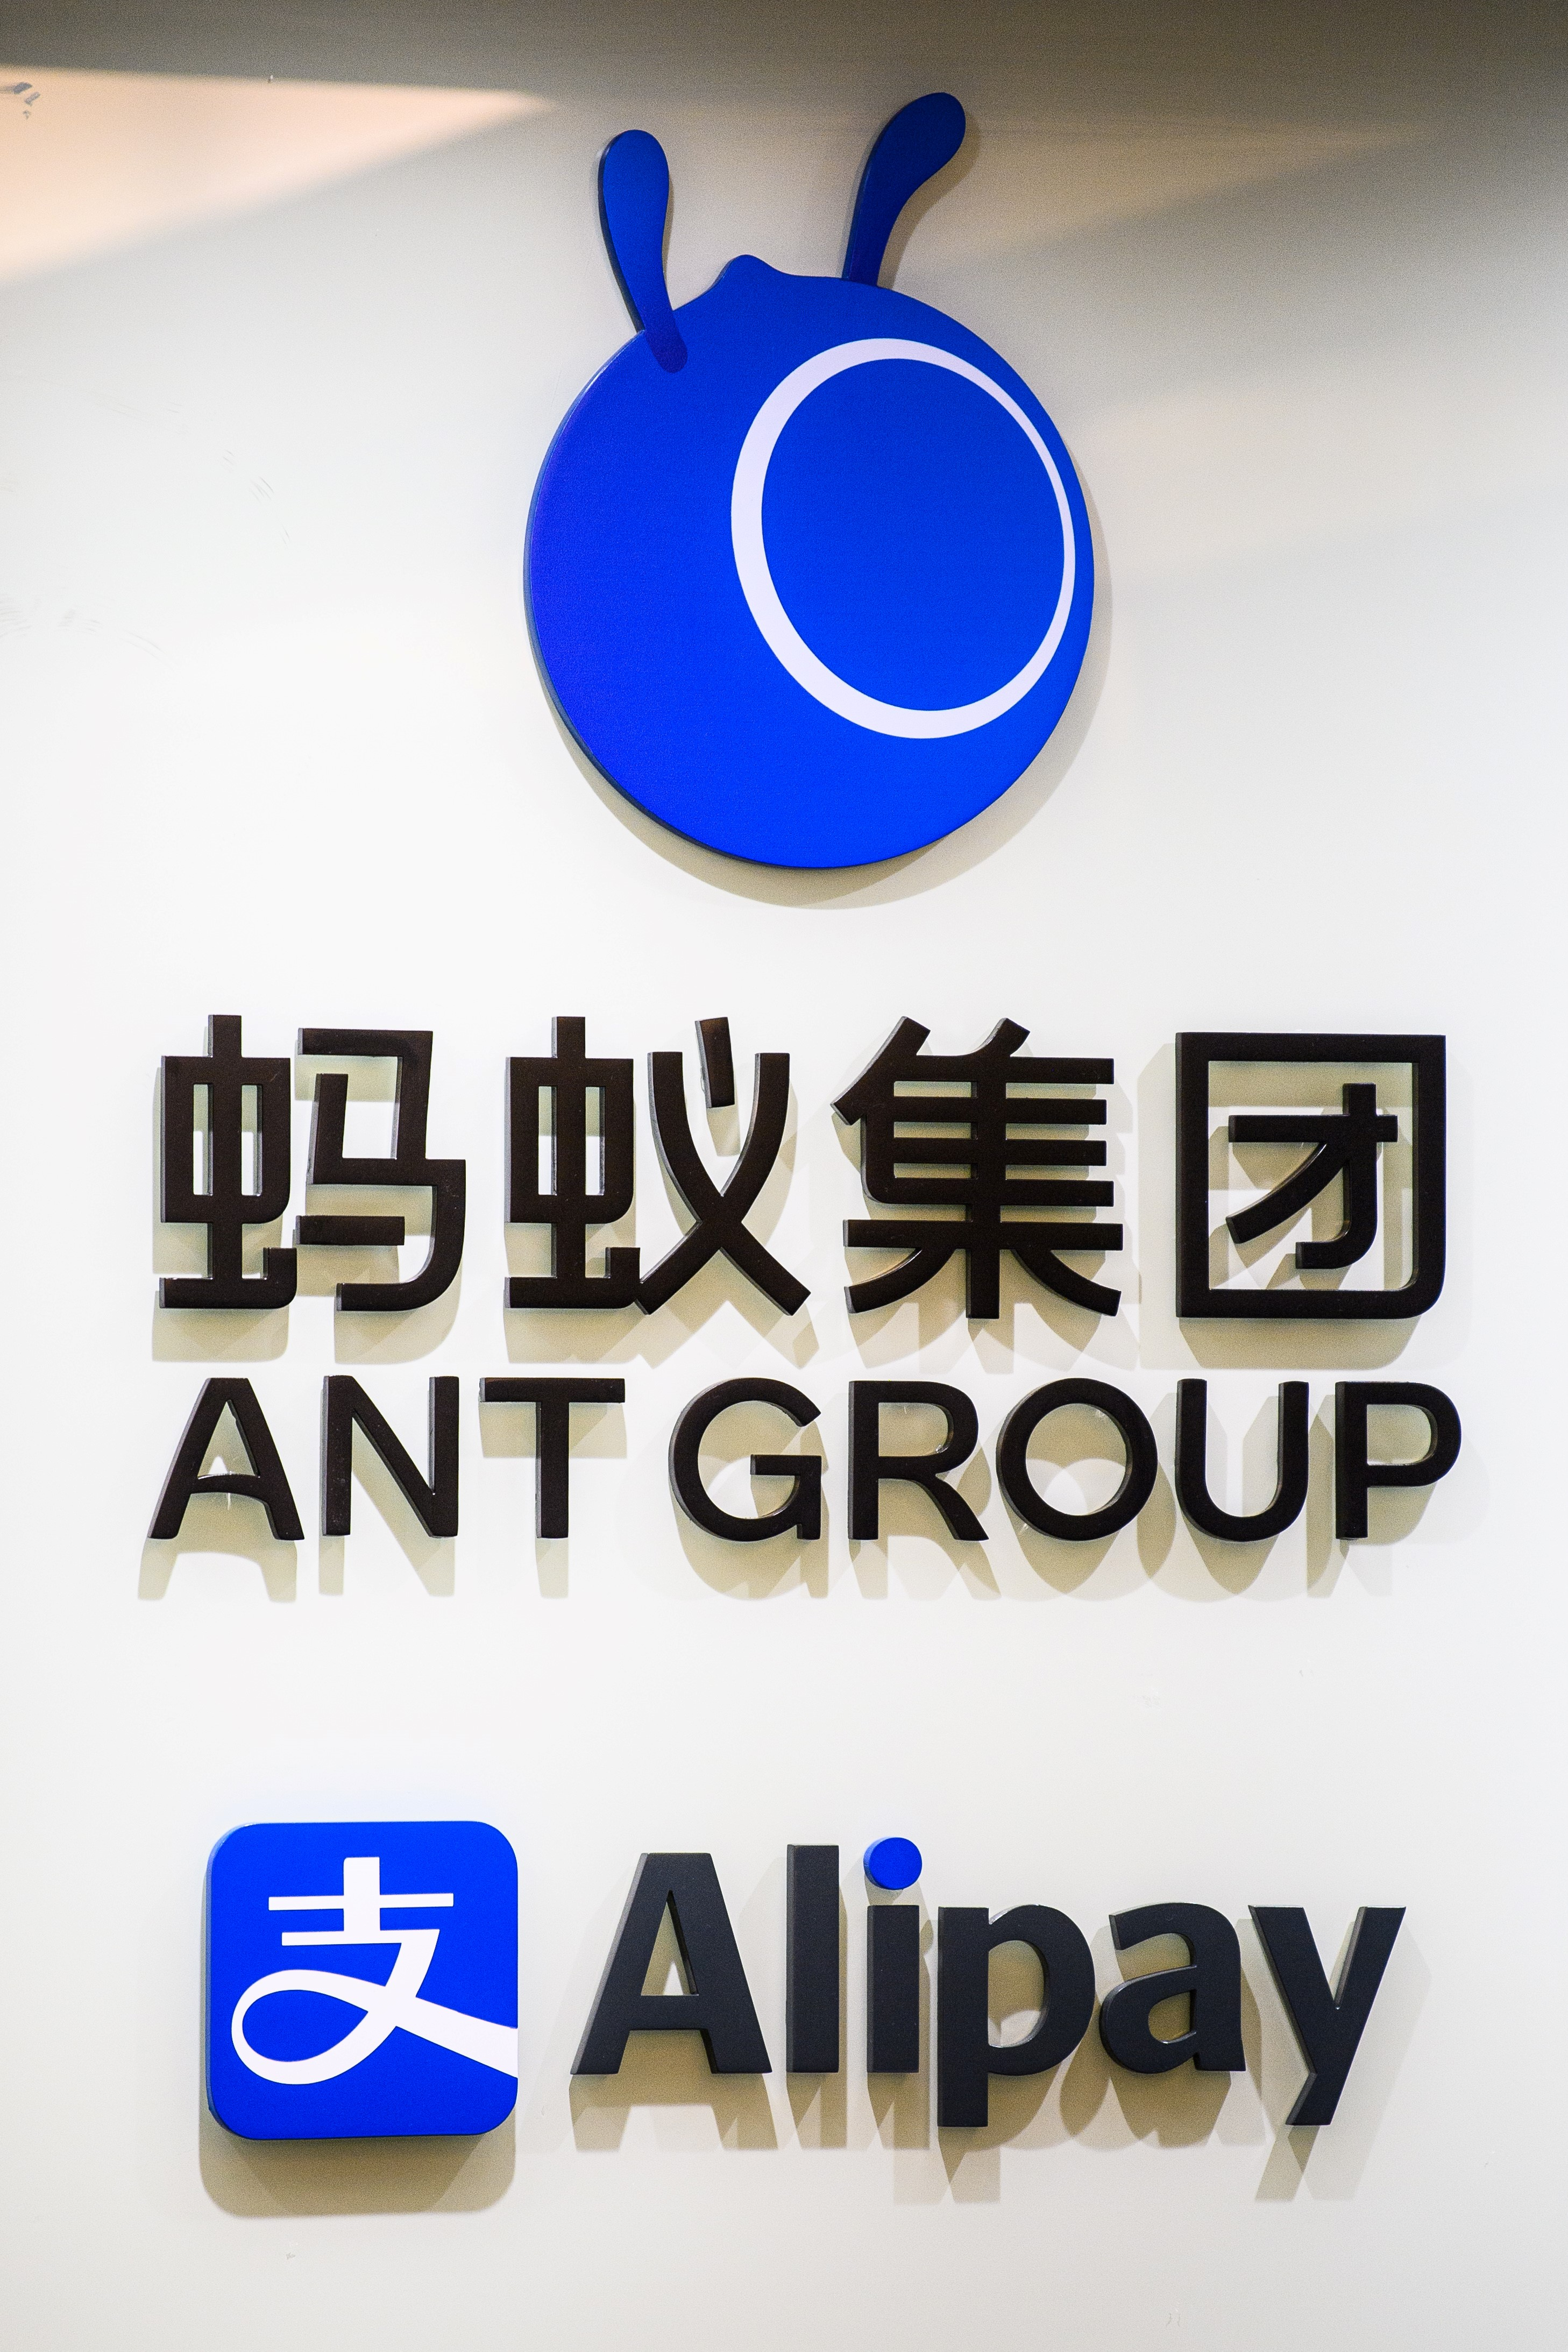 Logo của Ant Group. (Ảnh ANTHONY WALLACE / AFP qua Getty Images)